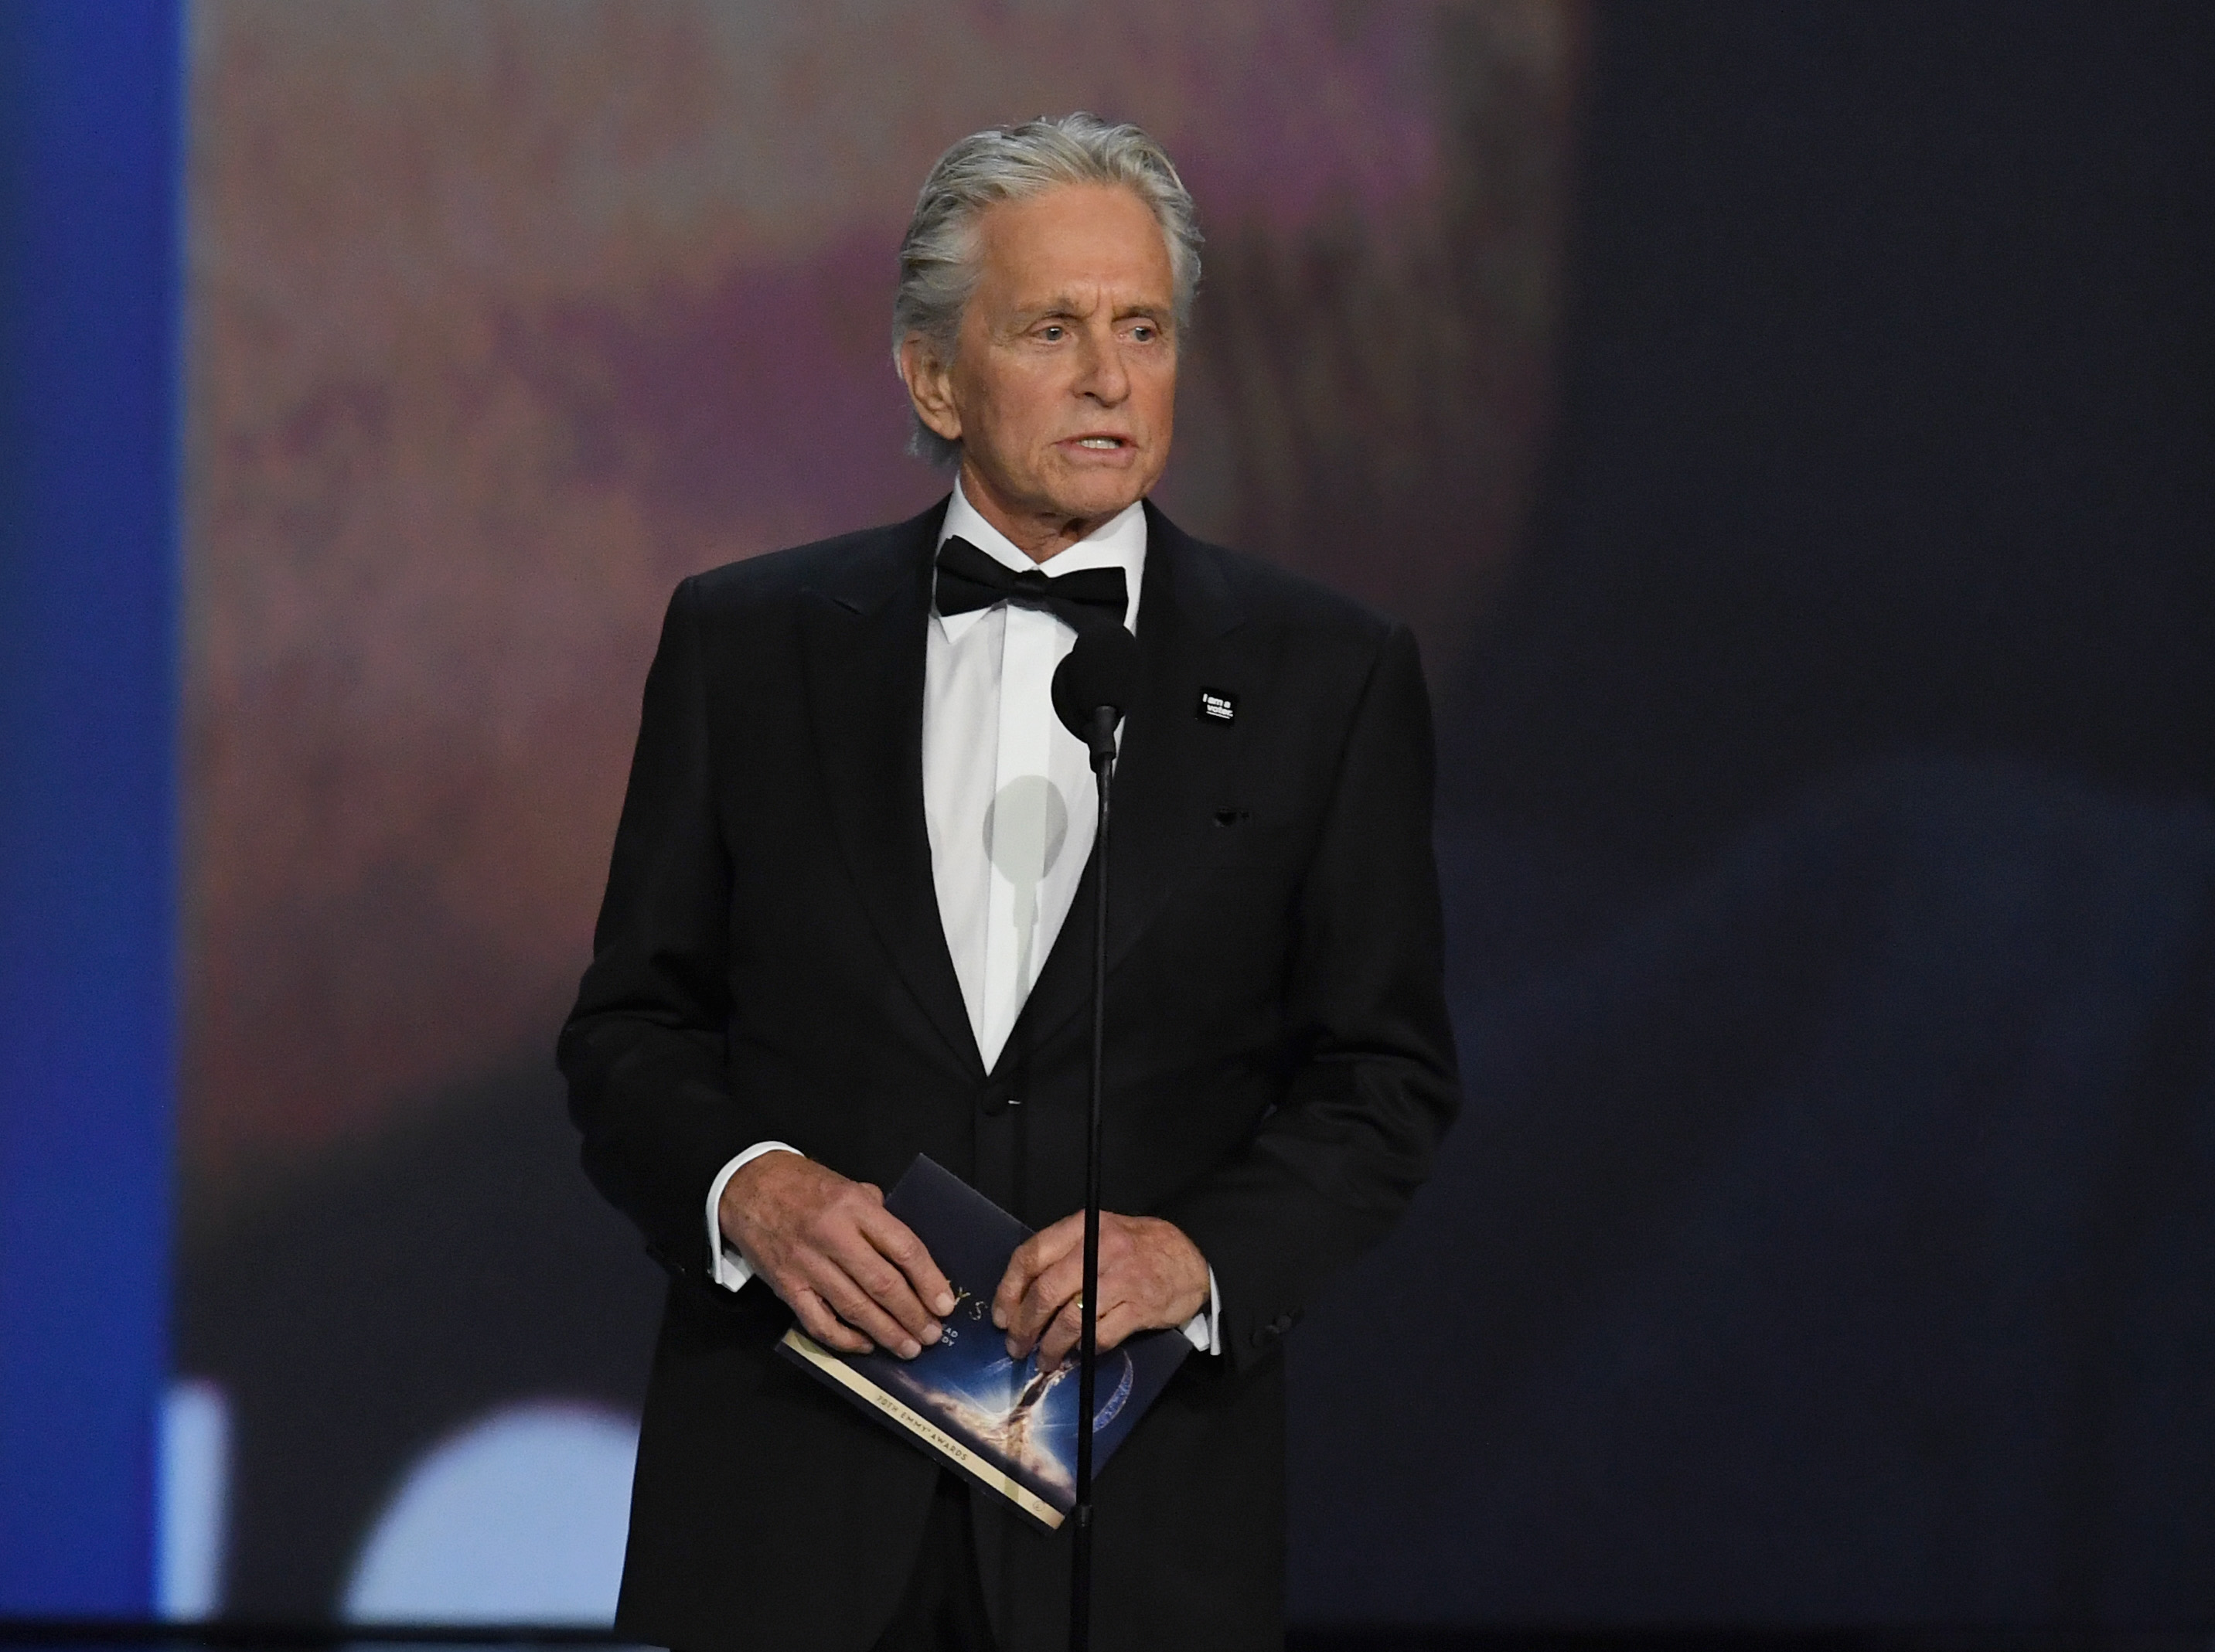 Michael Douglas speaks onstage during the 70th Emmy Awards at Microsoft Theater on September 17, 2018 in Los Angeles, California.